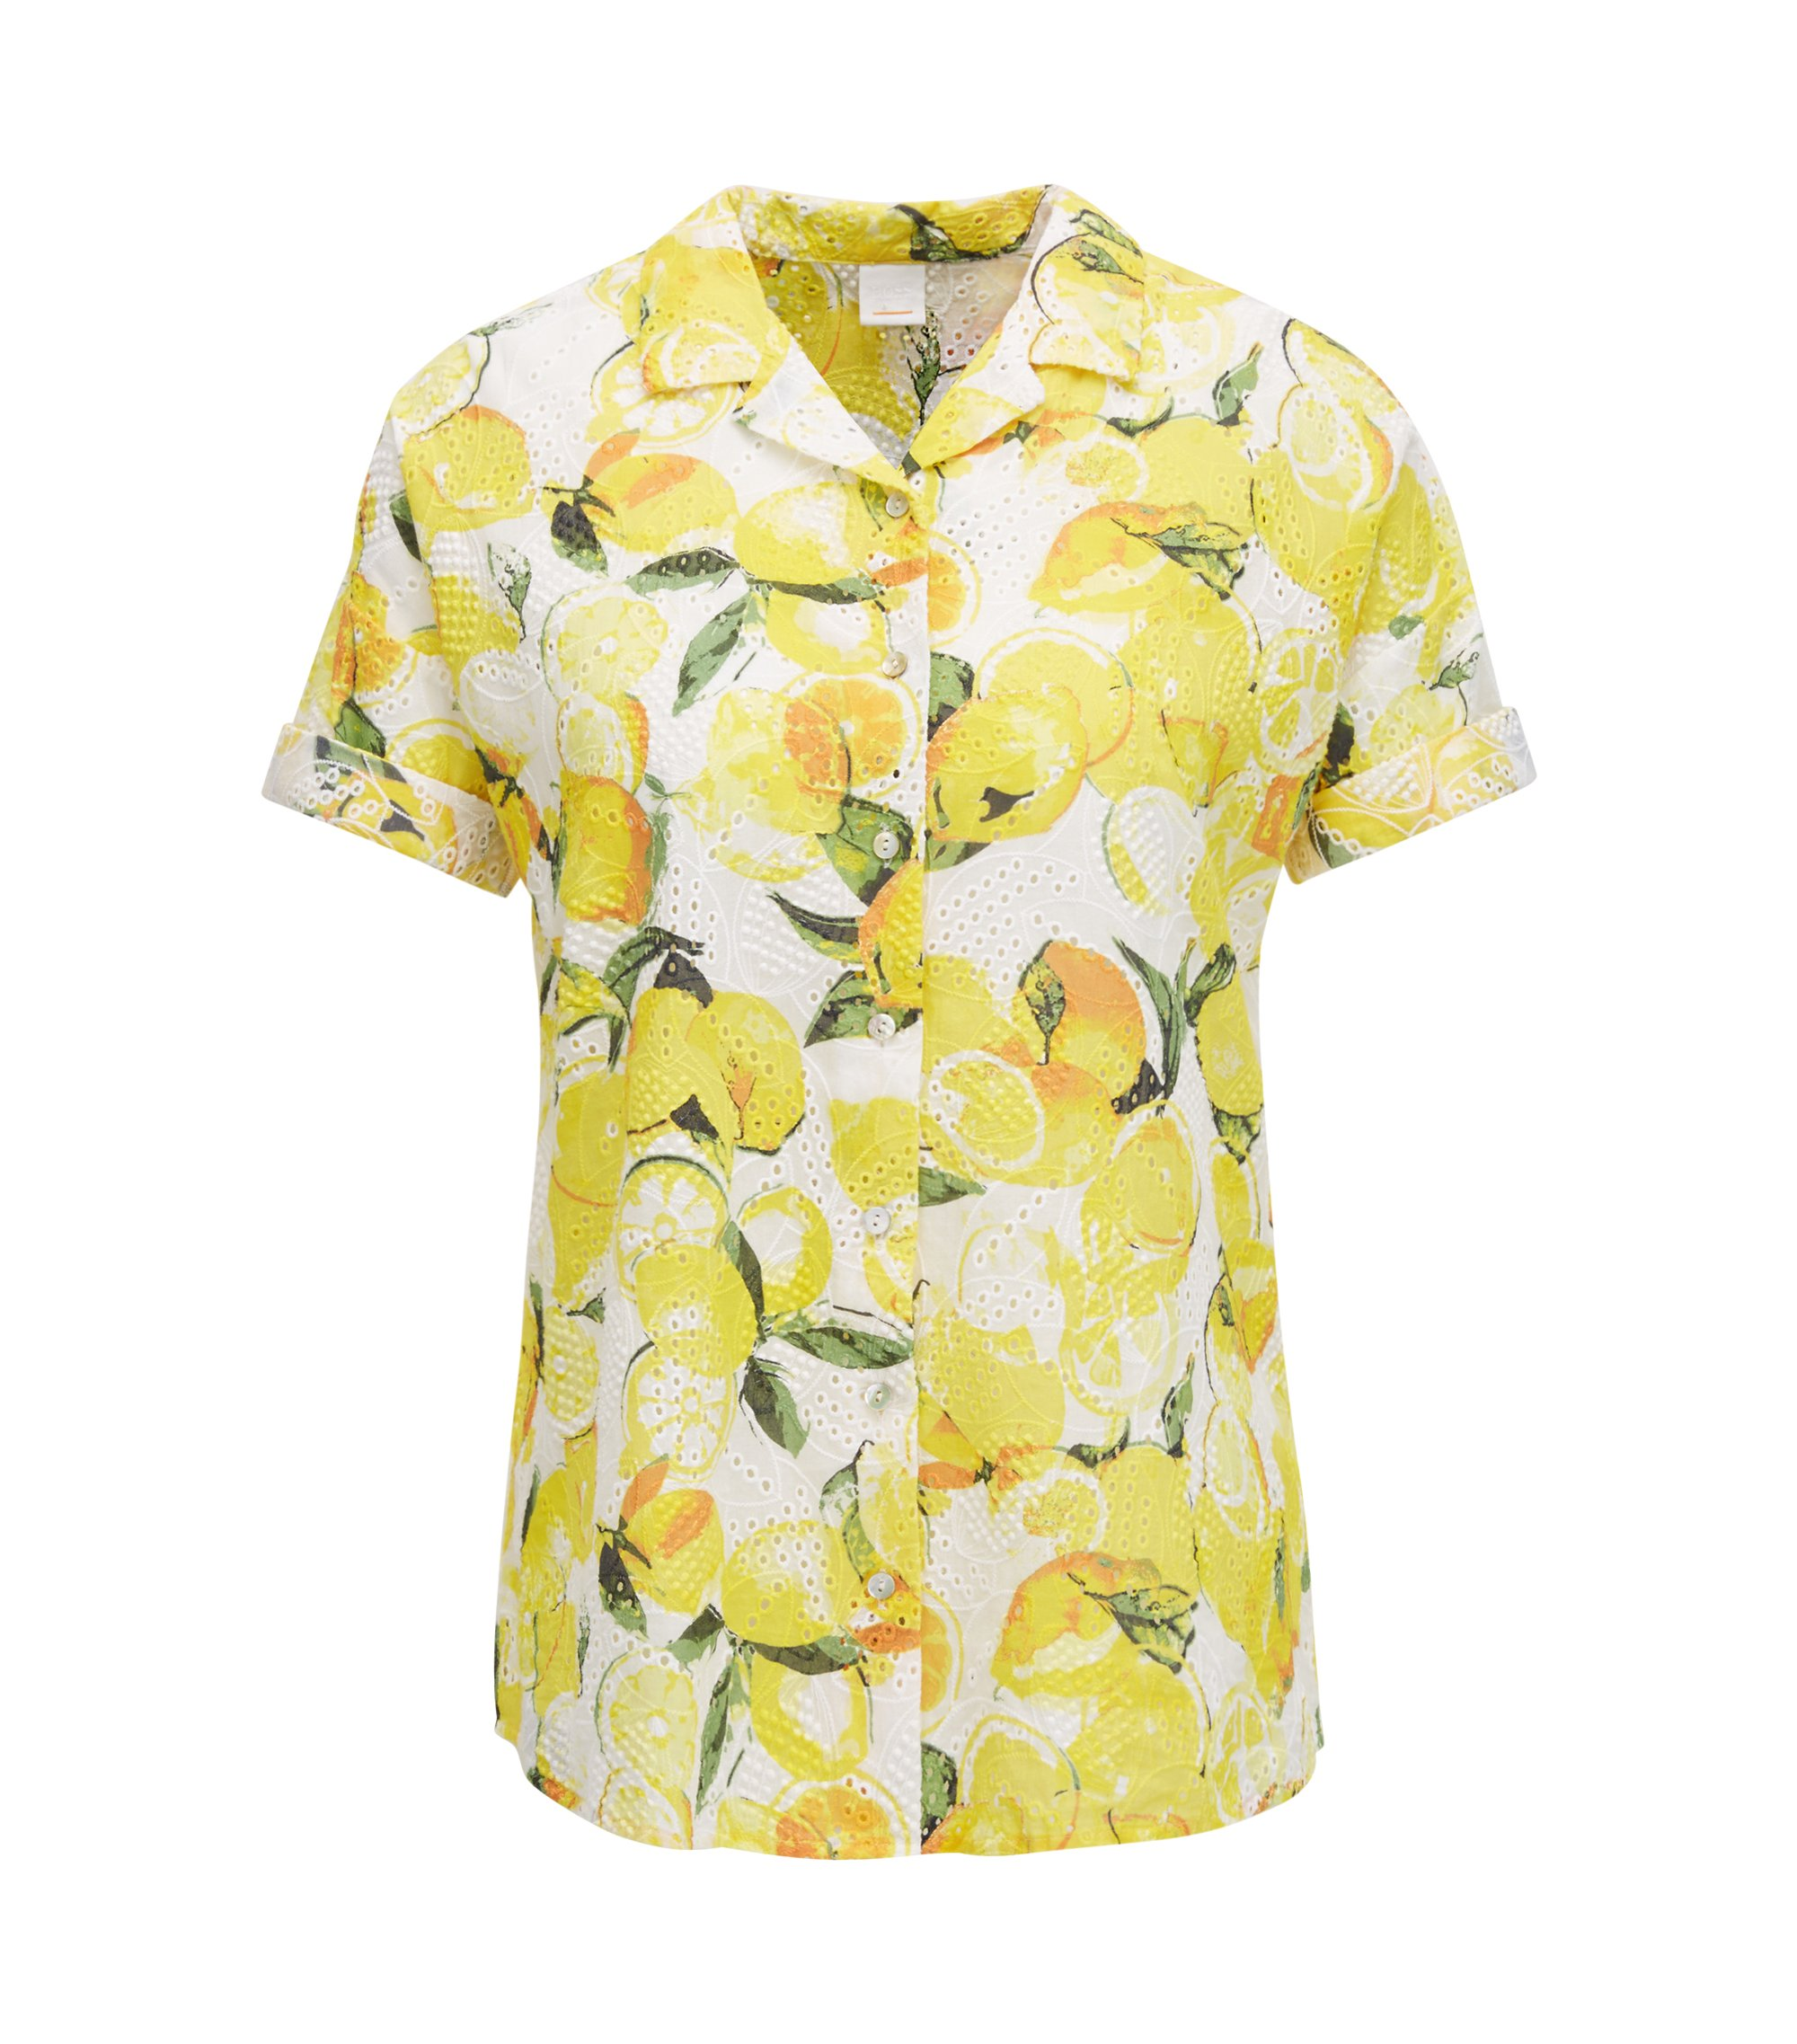 Cotton broderie-anglaise blouse with lemon print, Patterned